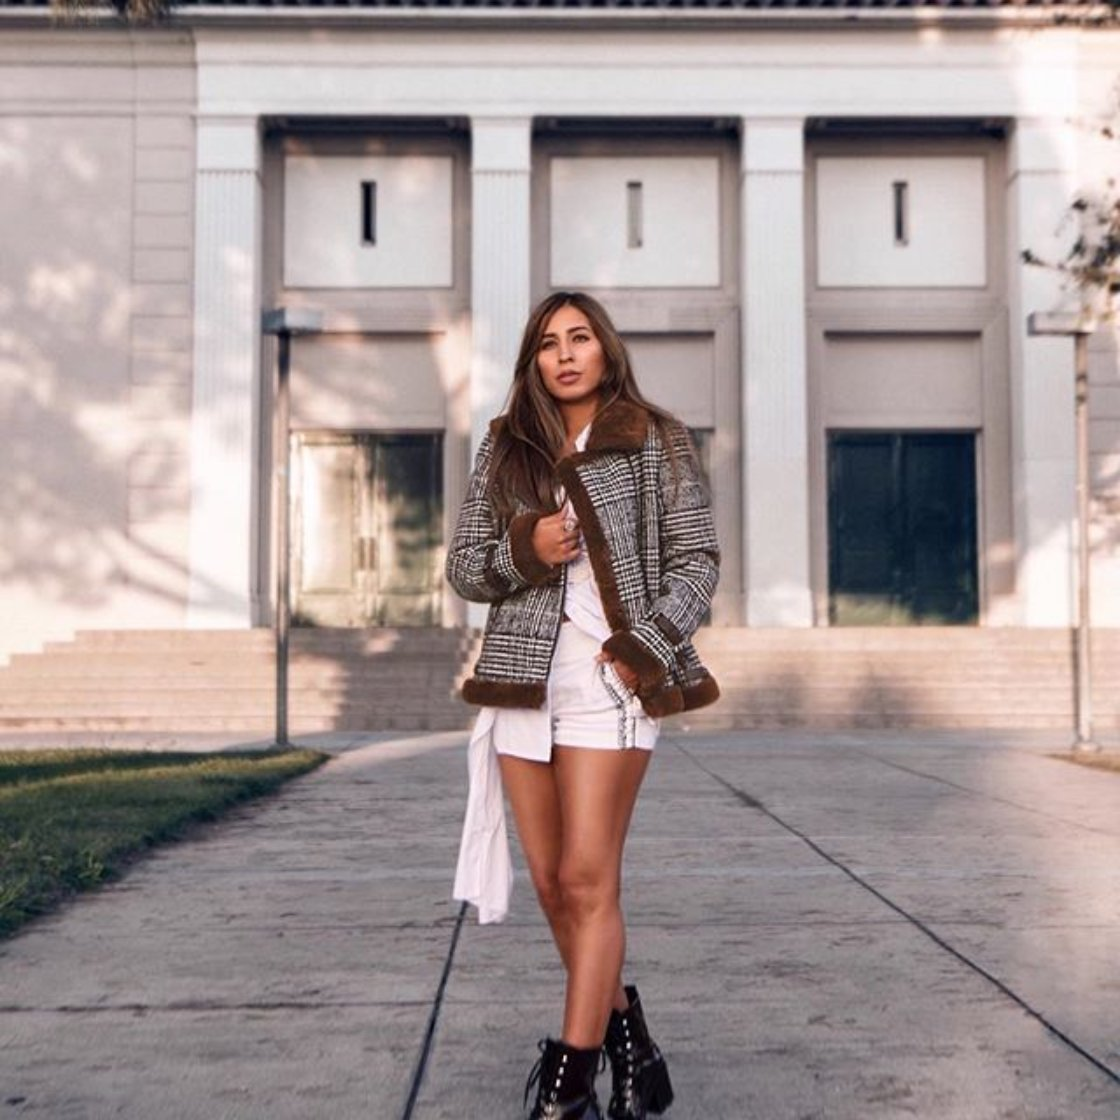 Irresistible 5 Fleece Jacket Trends For Fall/Winter That You Must Check Out